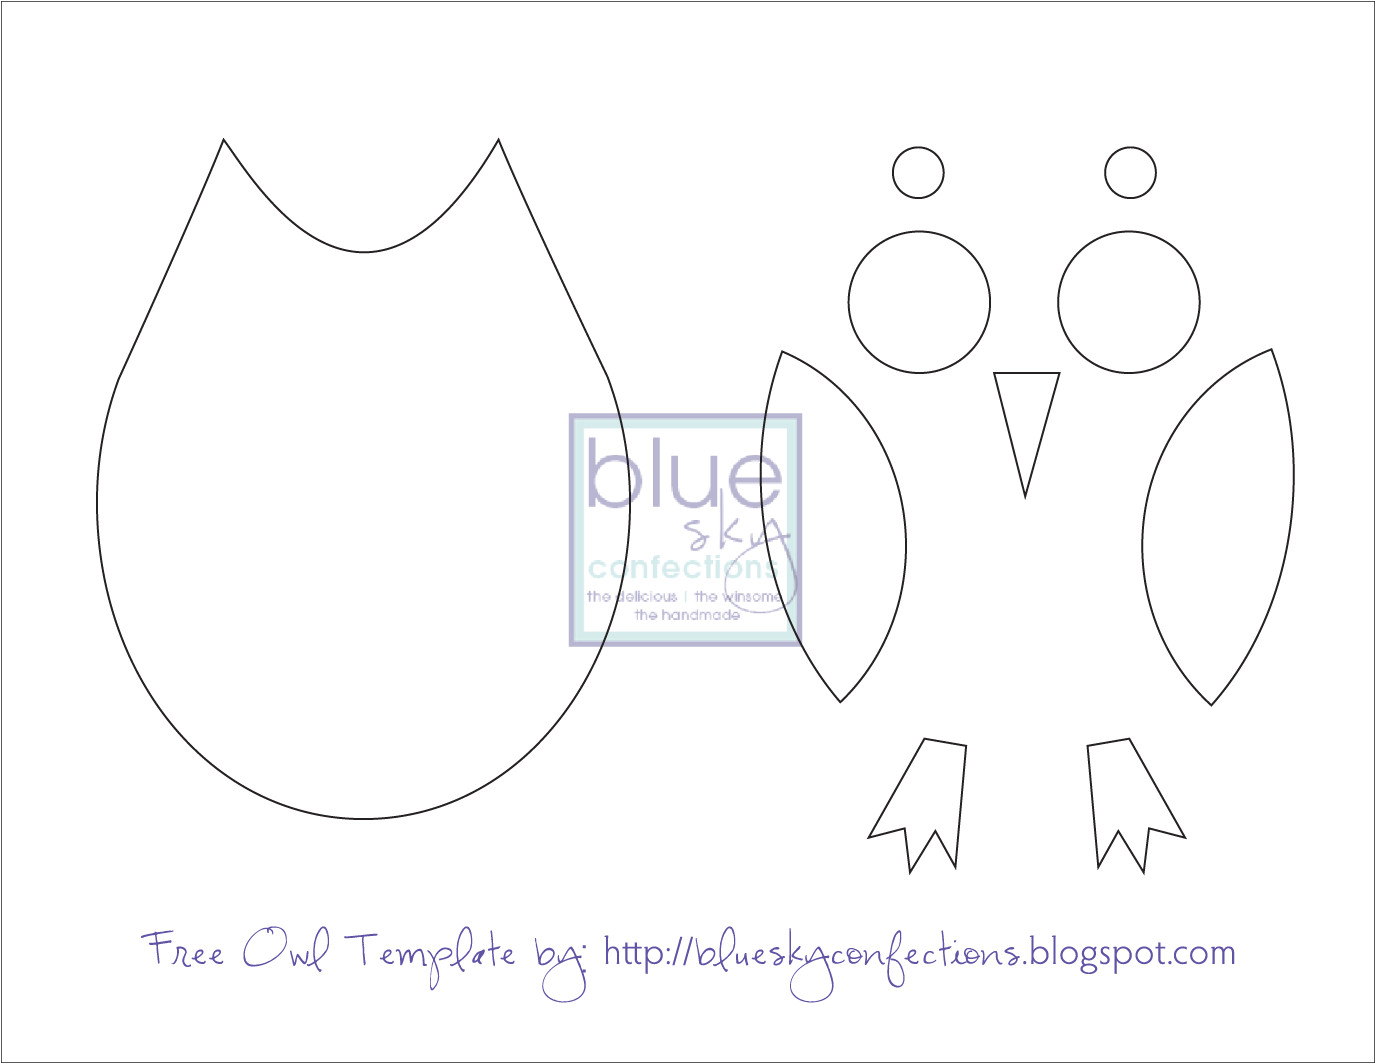 Small Owl Template Blue Sky Confections October 2010